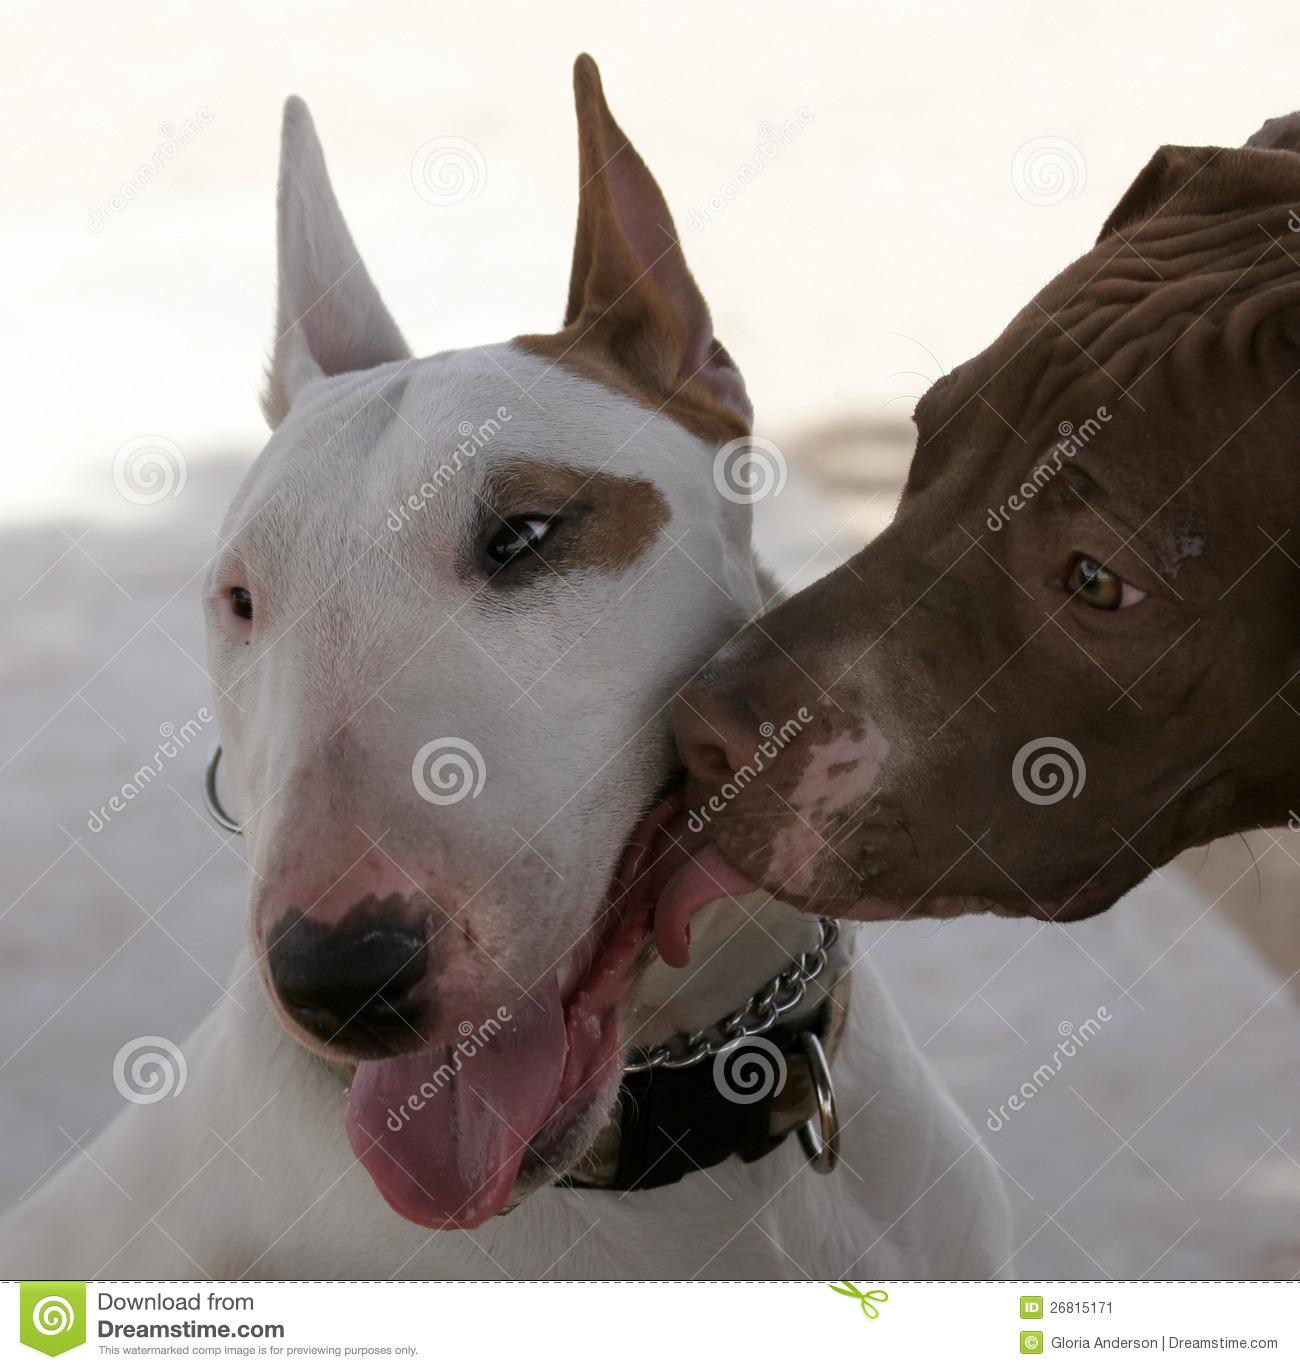 Pitbull Kissing A Bull Terrier Stock Image - Image: 26815171